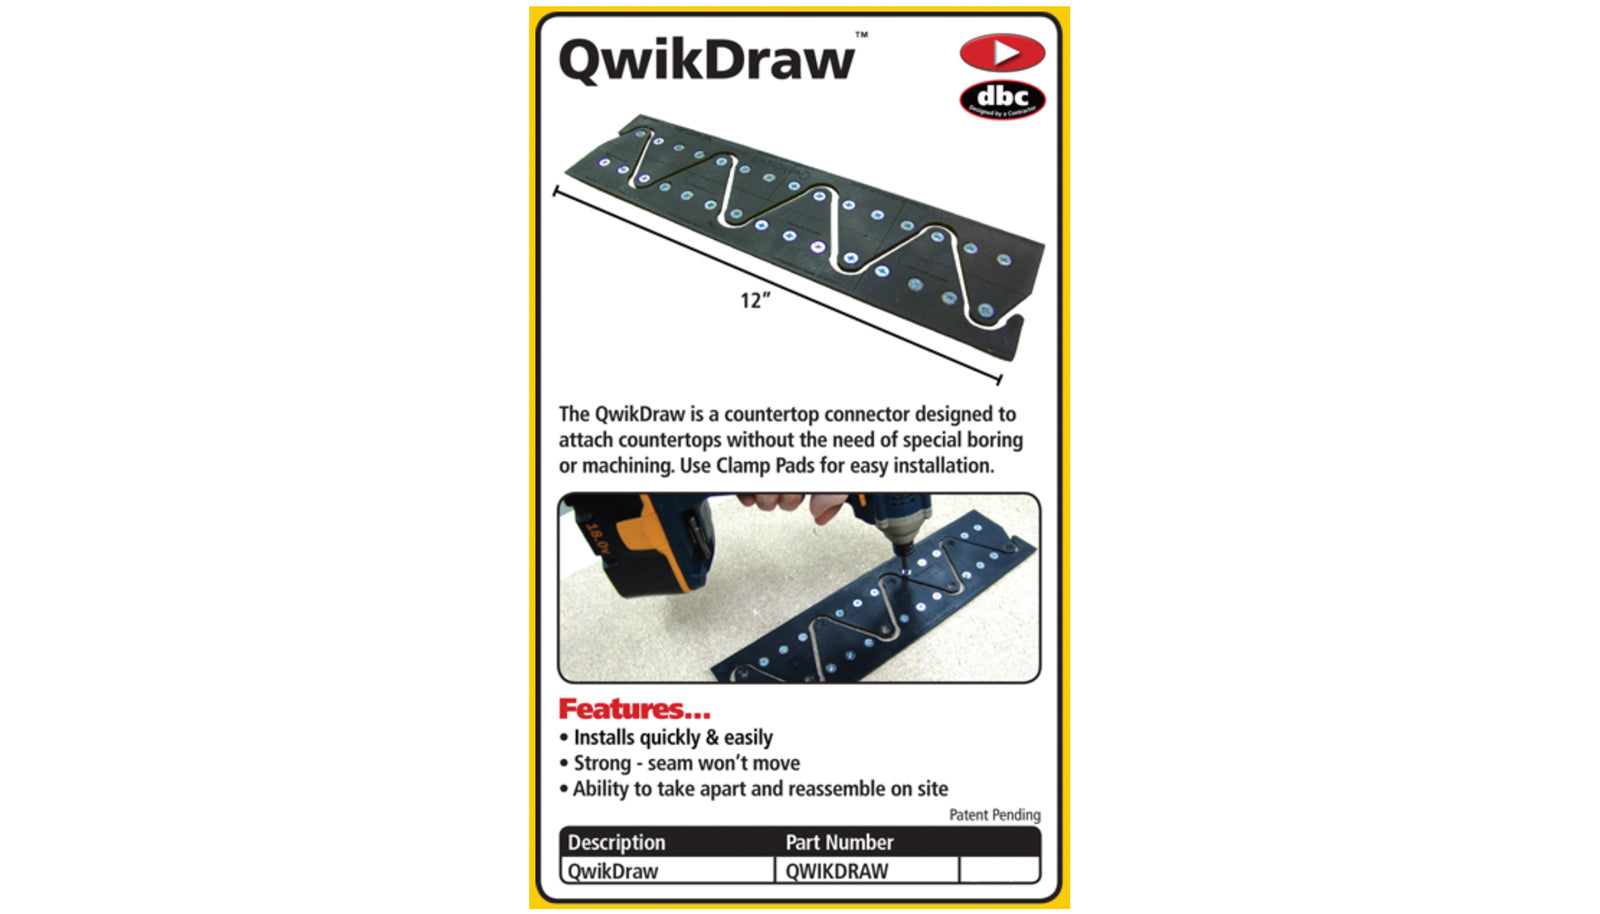 FastCap Qwikdraw Countertop Connector - Designed to attach countertops quick & fast